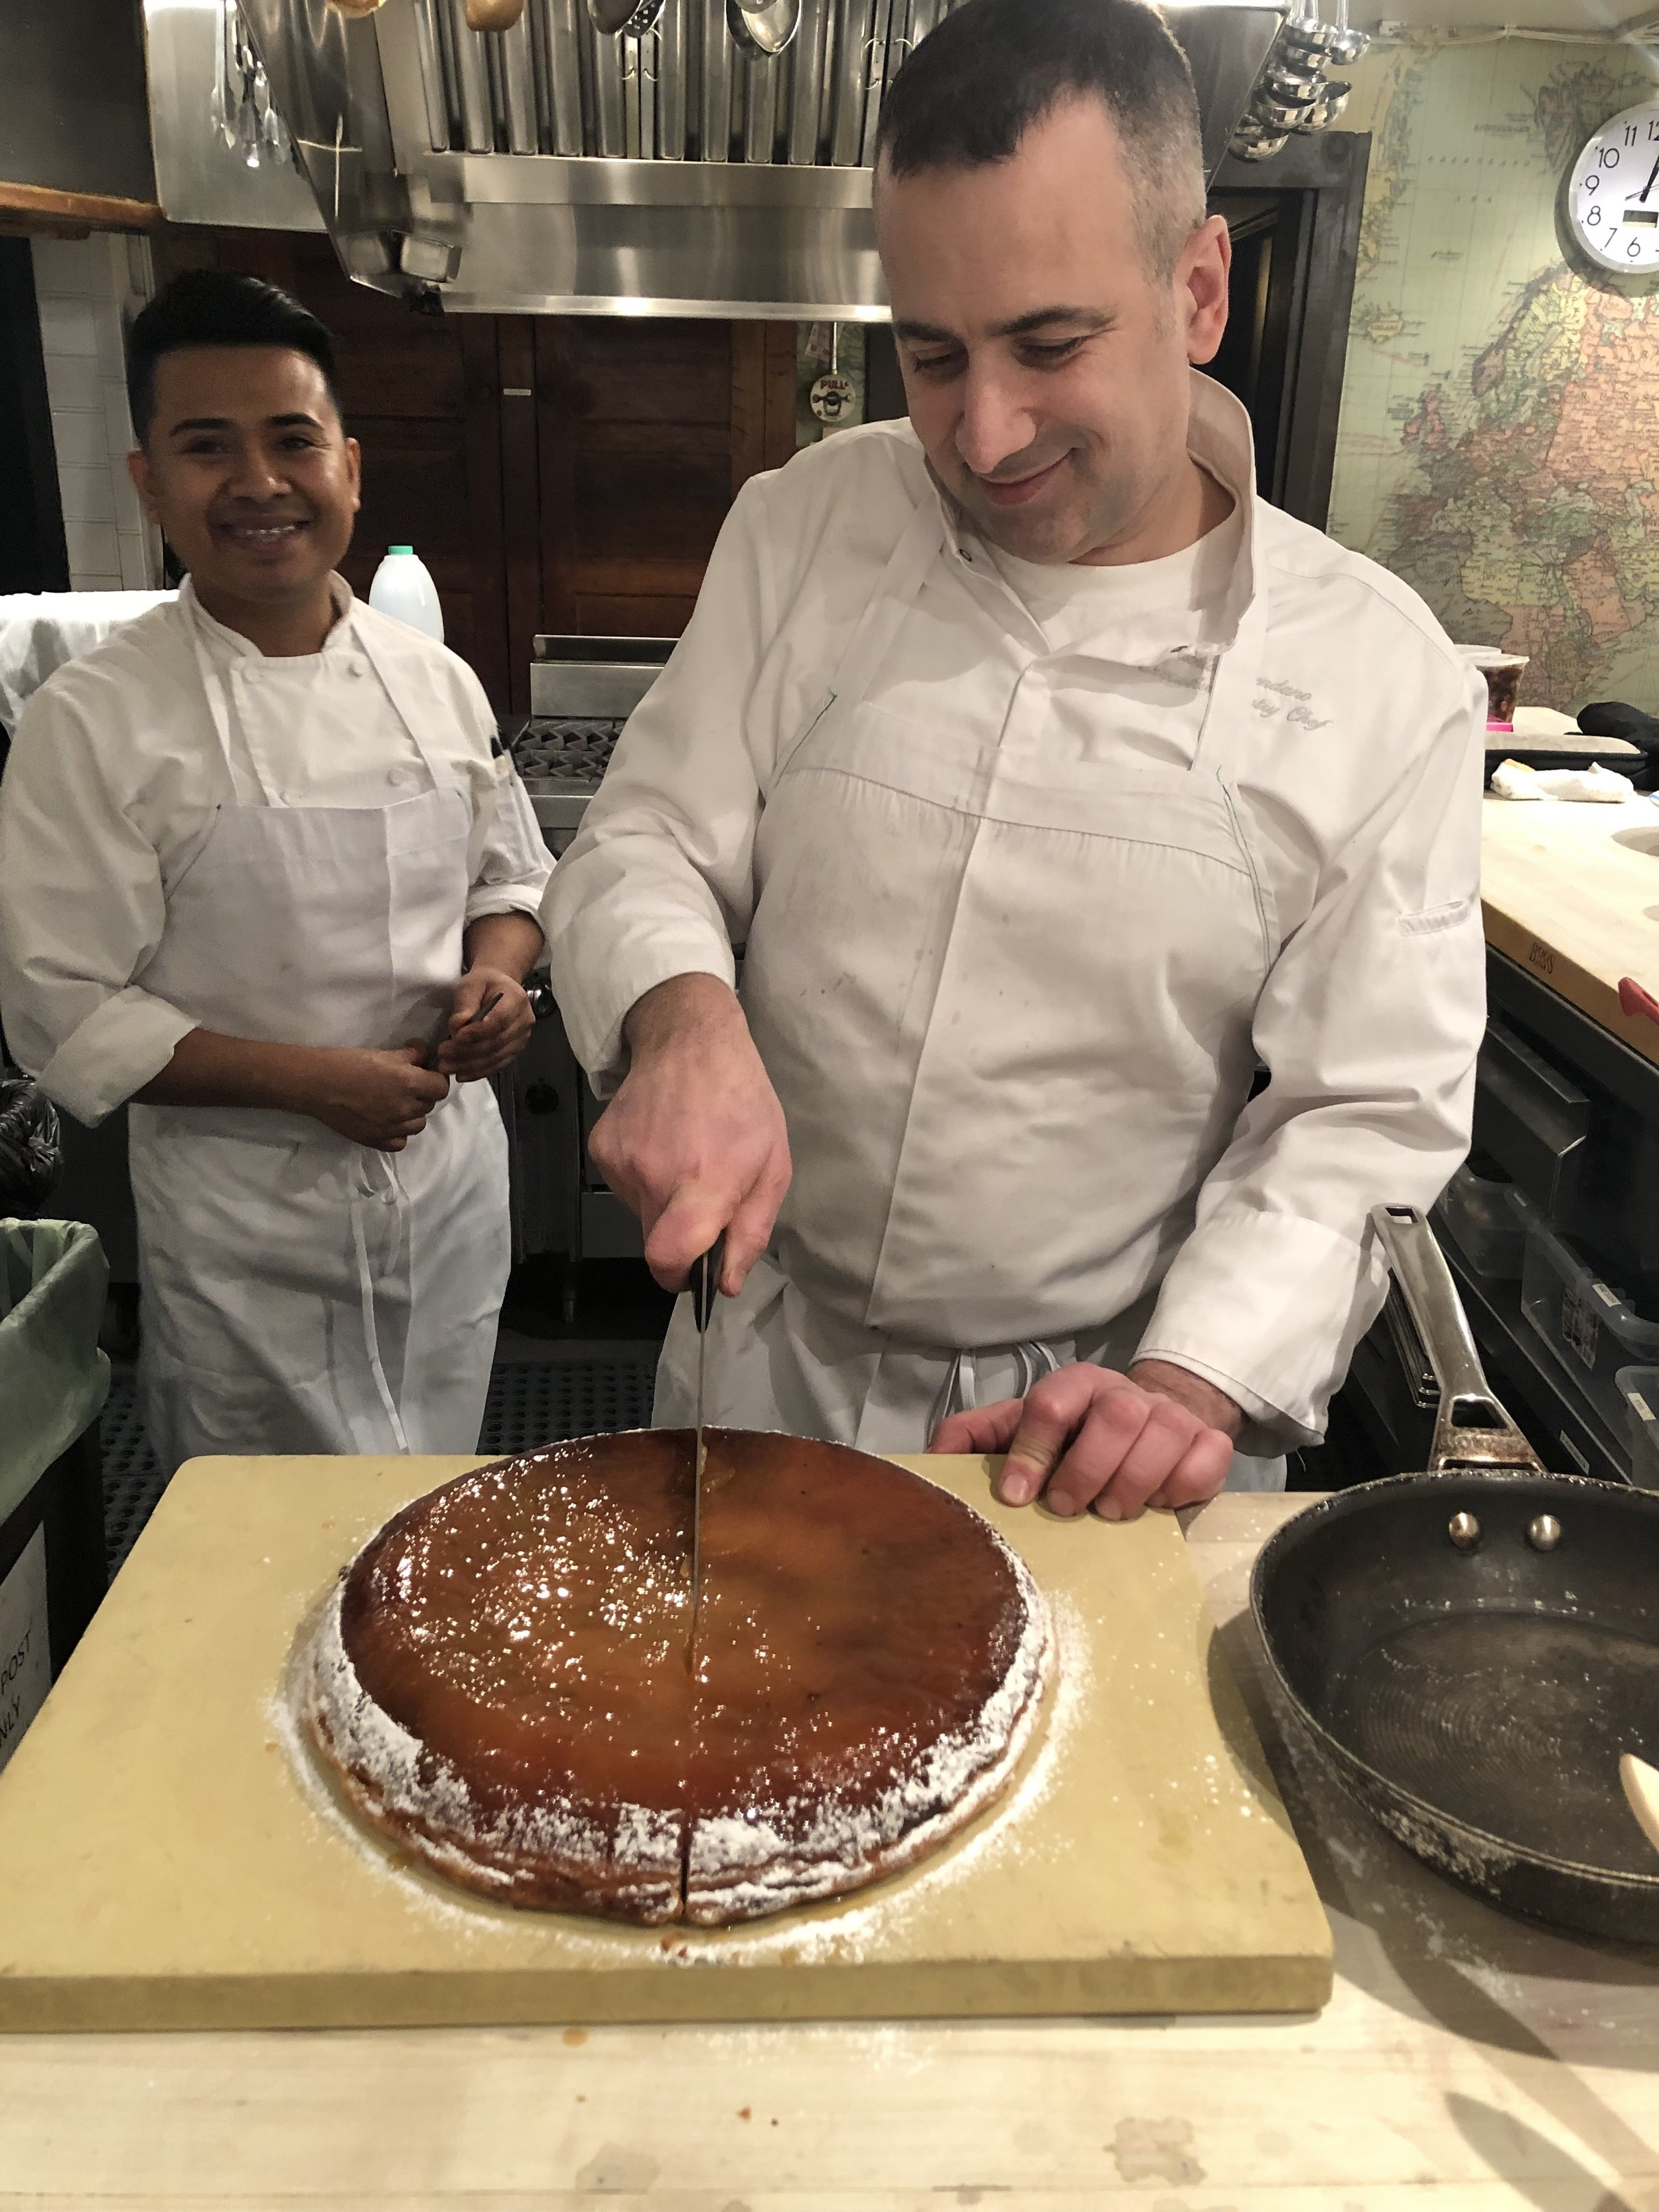 Still dreaming of this tarte tatin by Fabrice Bendano from Le Diplomate.